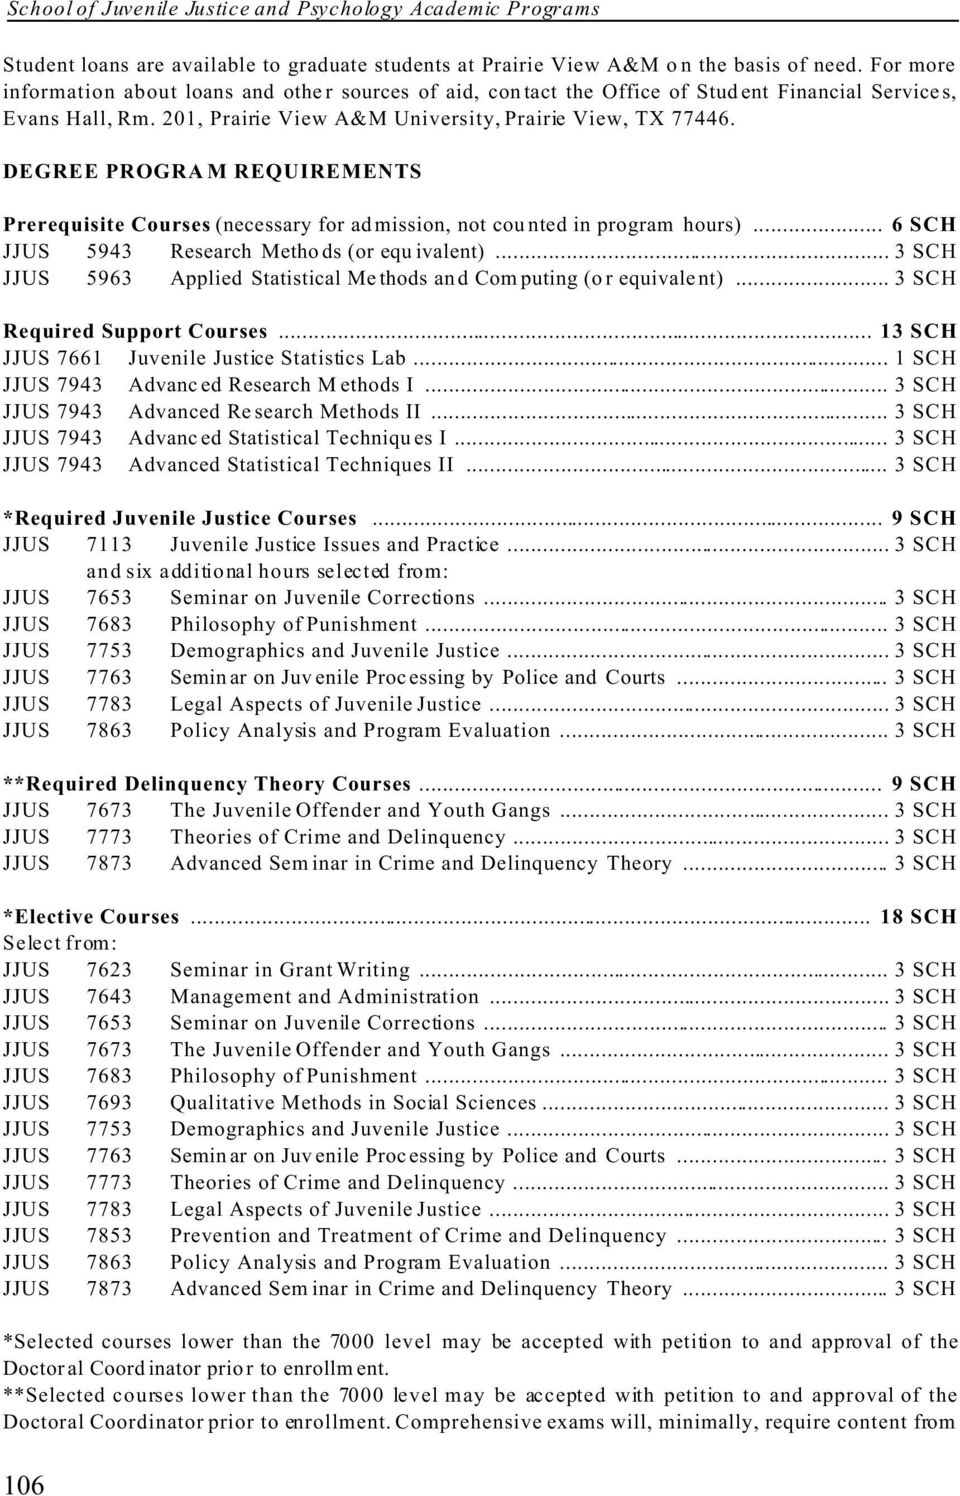 DEGREE PROGRAM REQUIREMENTS Prerequisite Courses (necessary for admission, not counted in program hours)... 6 SCH JJUS 5943 Research Metho ds (or equ ivalent).